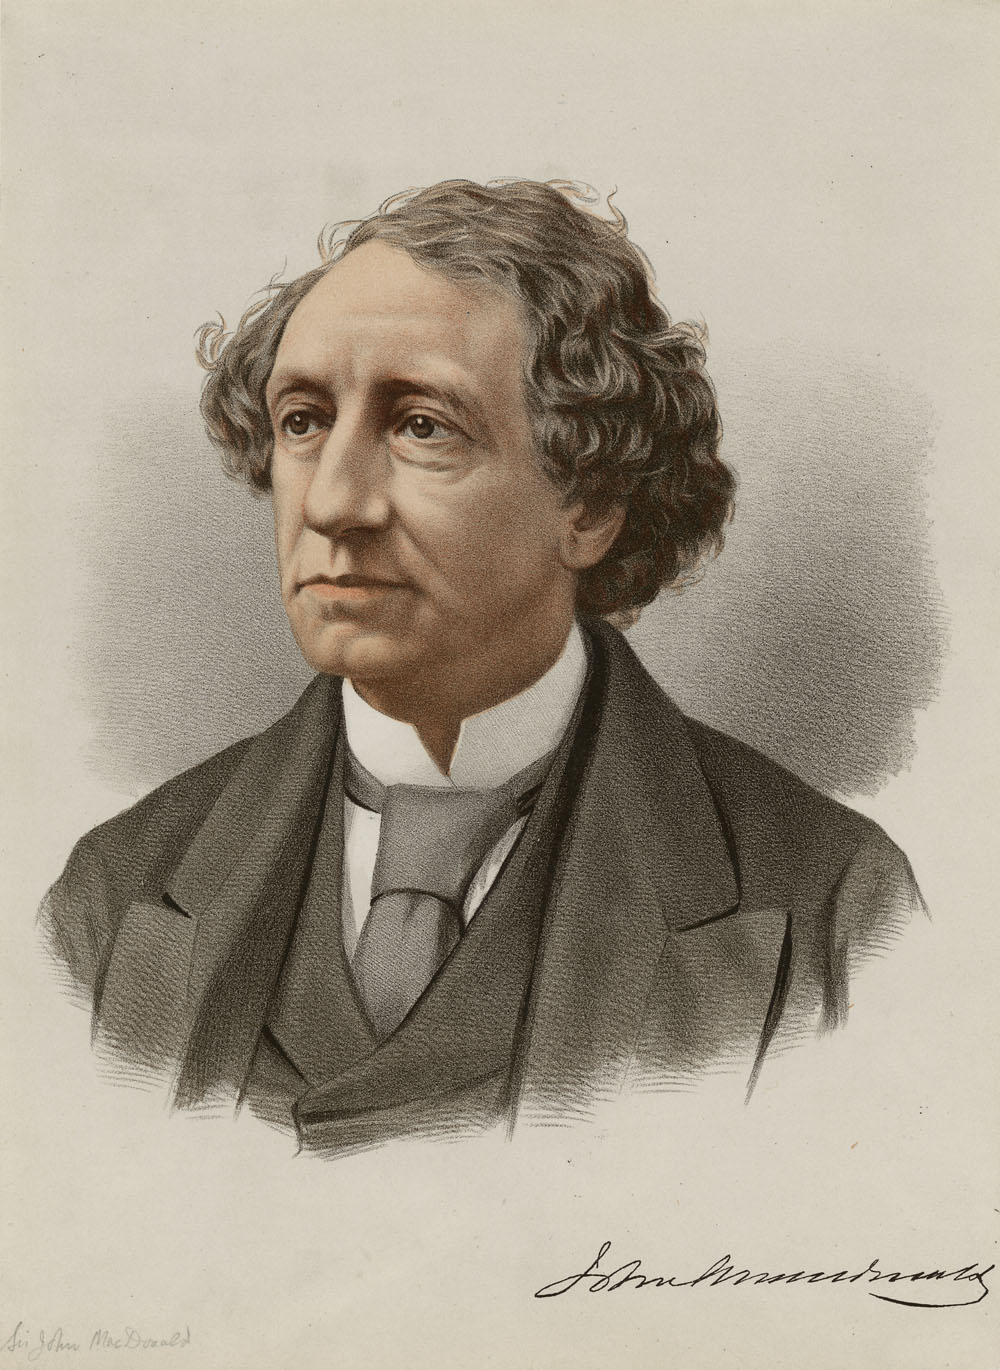 Sir John A. Macdonald via Library and Archives Canada.